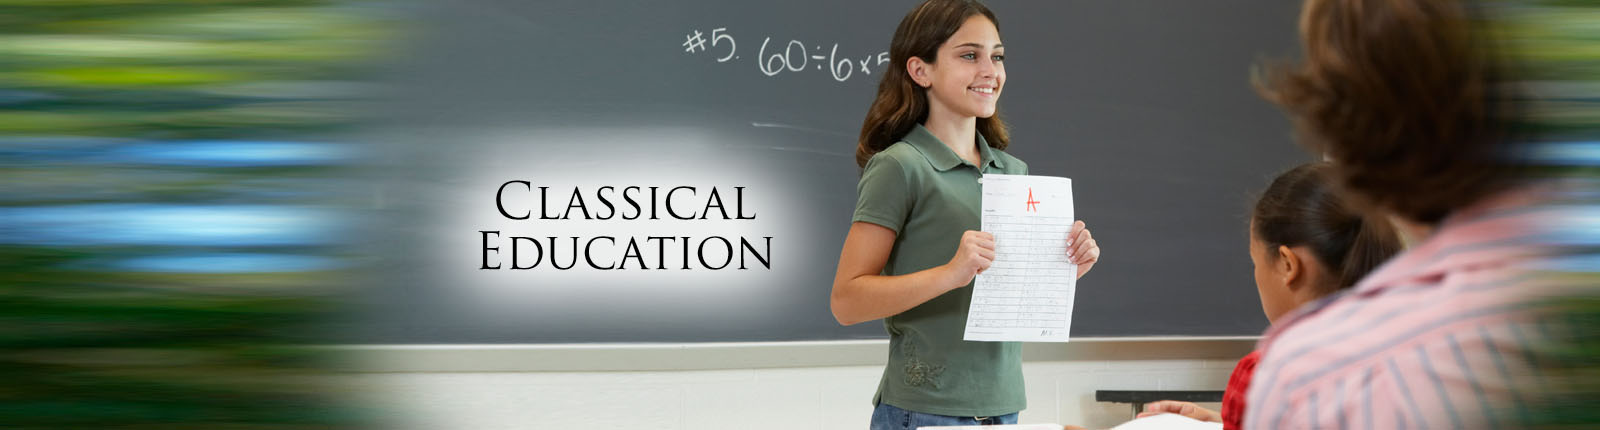 CCA Classical Education